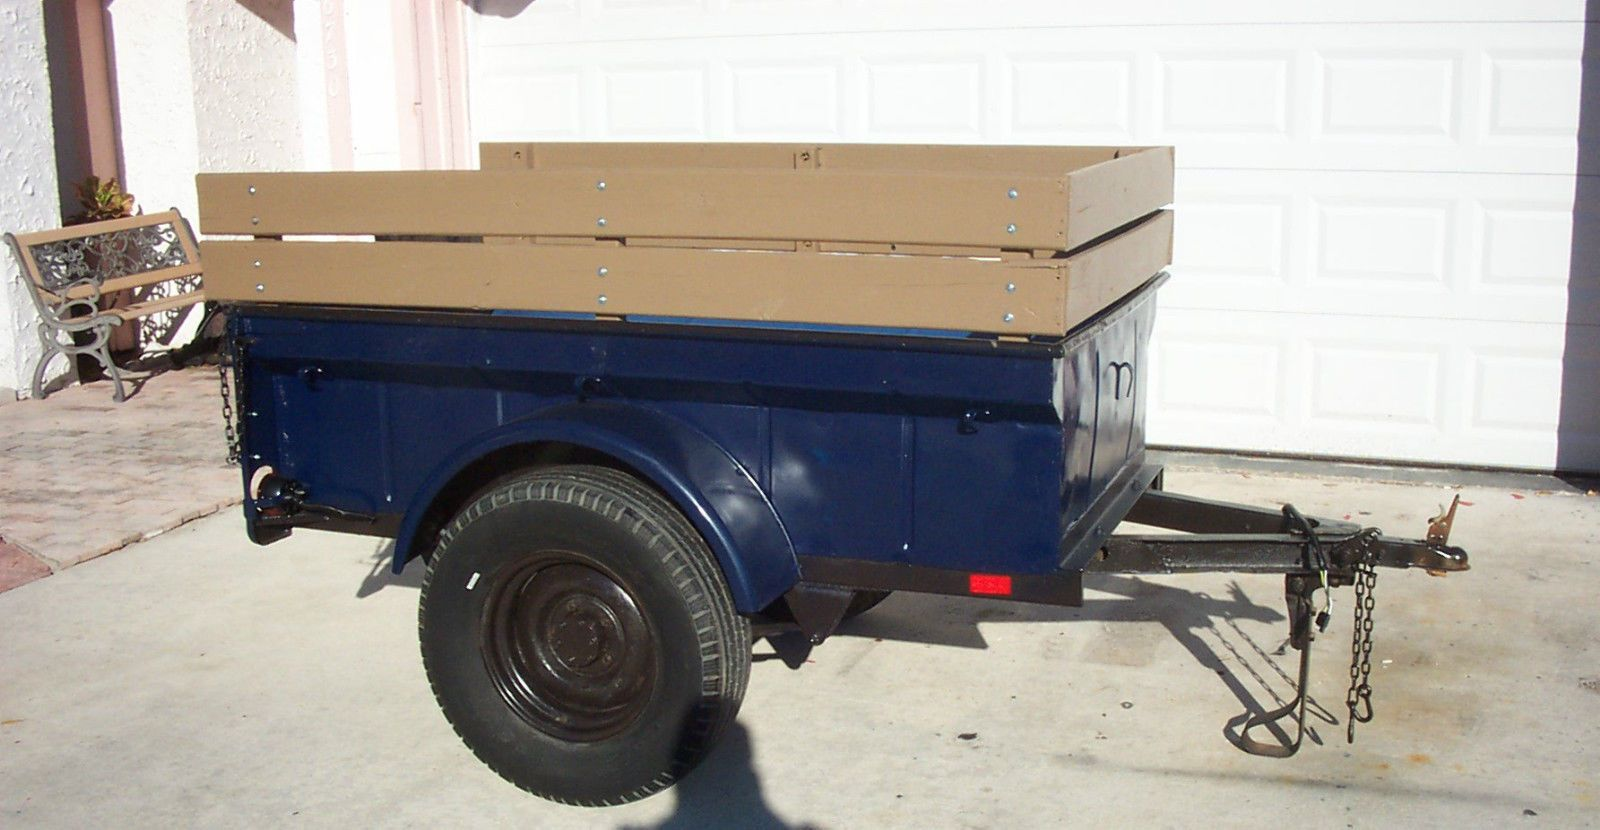 Bantam Trailer For Sale In Florida Http Rover Ebay Com Rover 1 711 53200 19255 0 1 Icep Ff3 2 Pub 5575075089 Toolid Jeep Trailer Jeep Parts Jeep Accessories